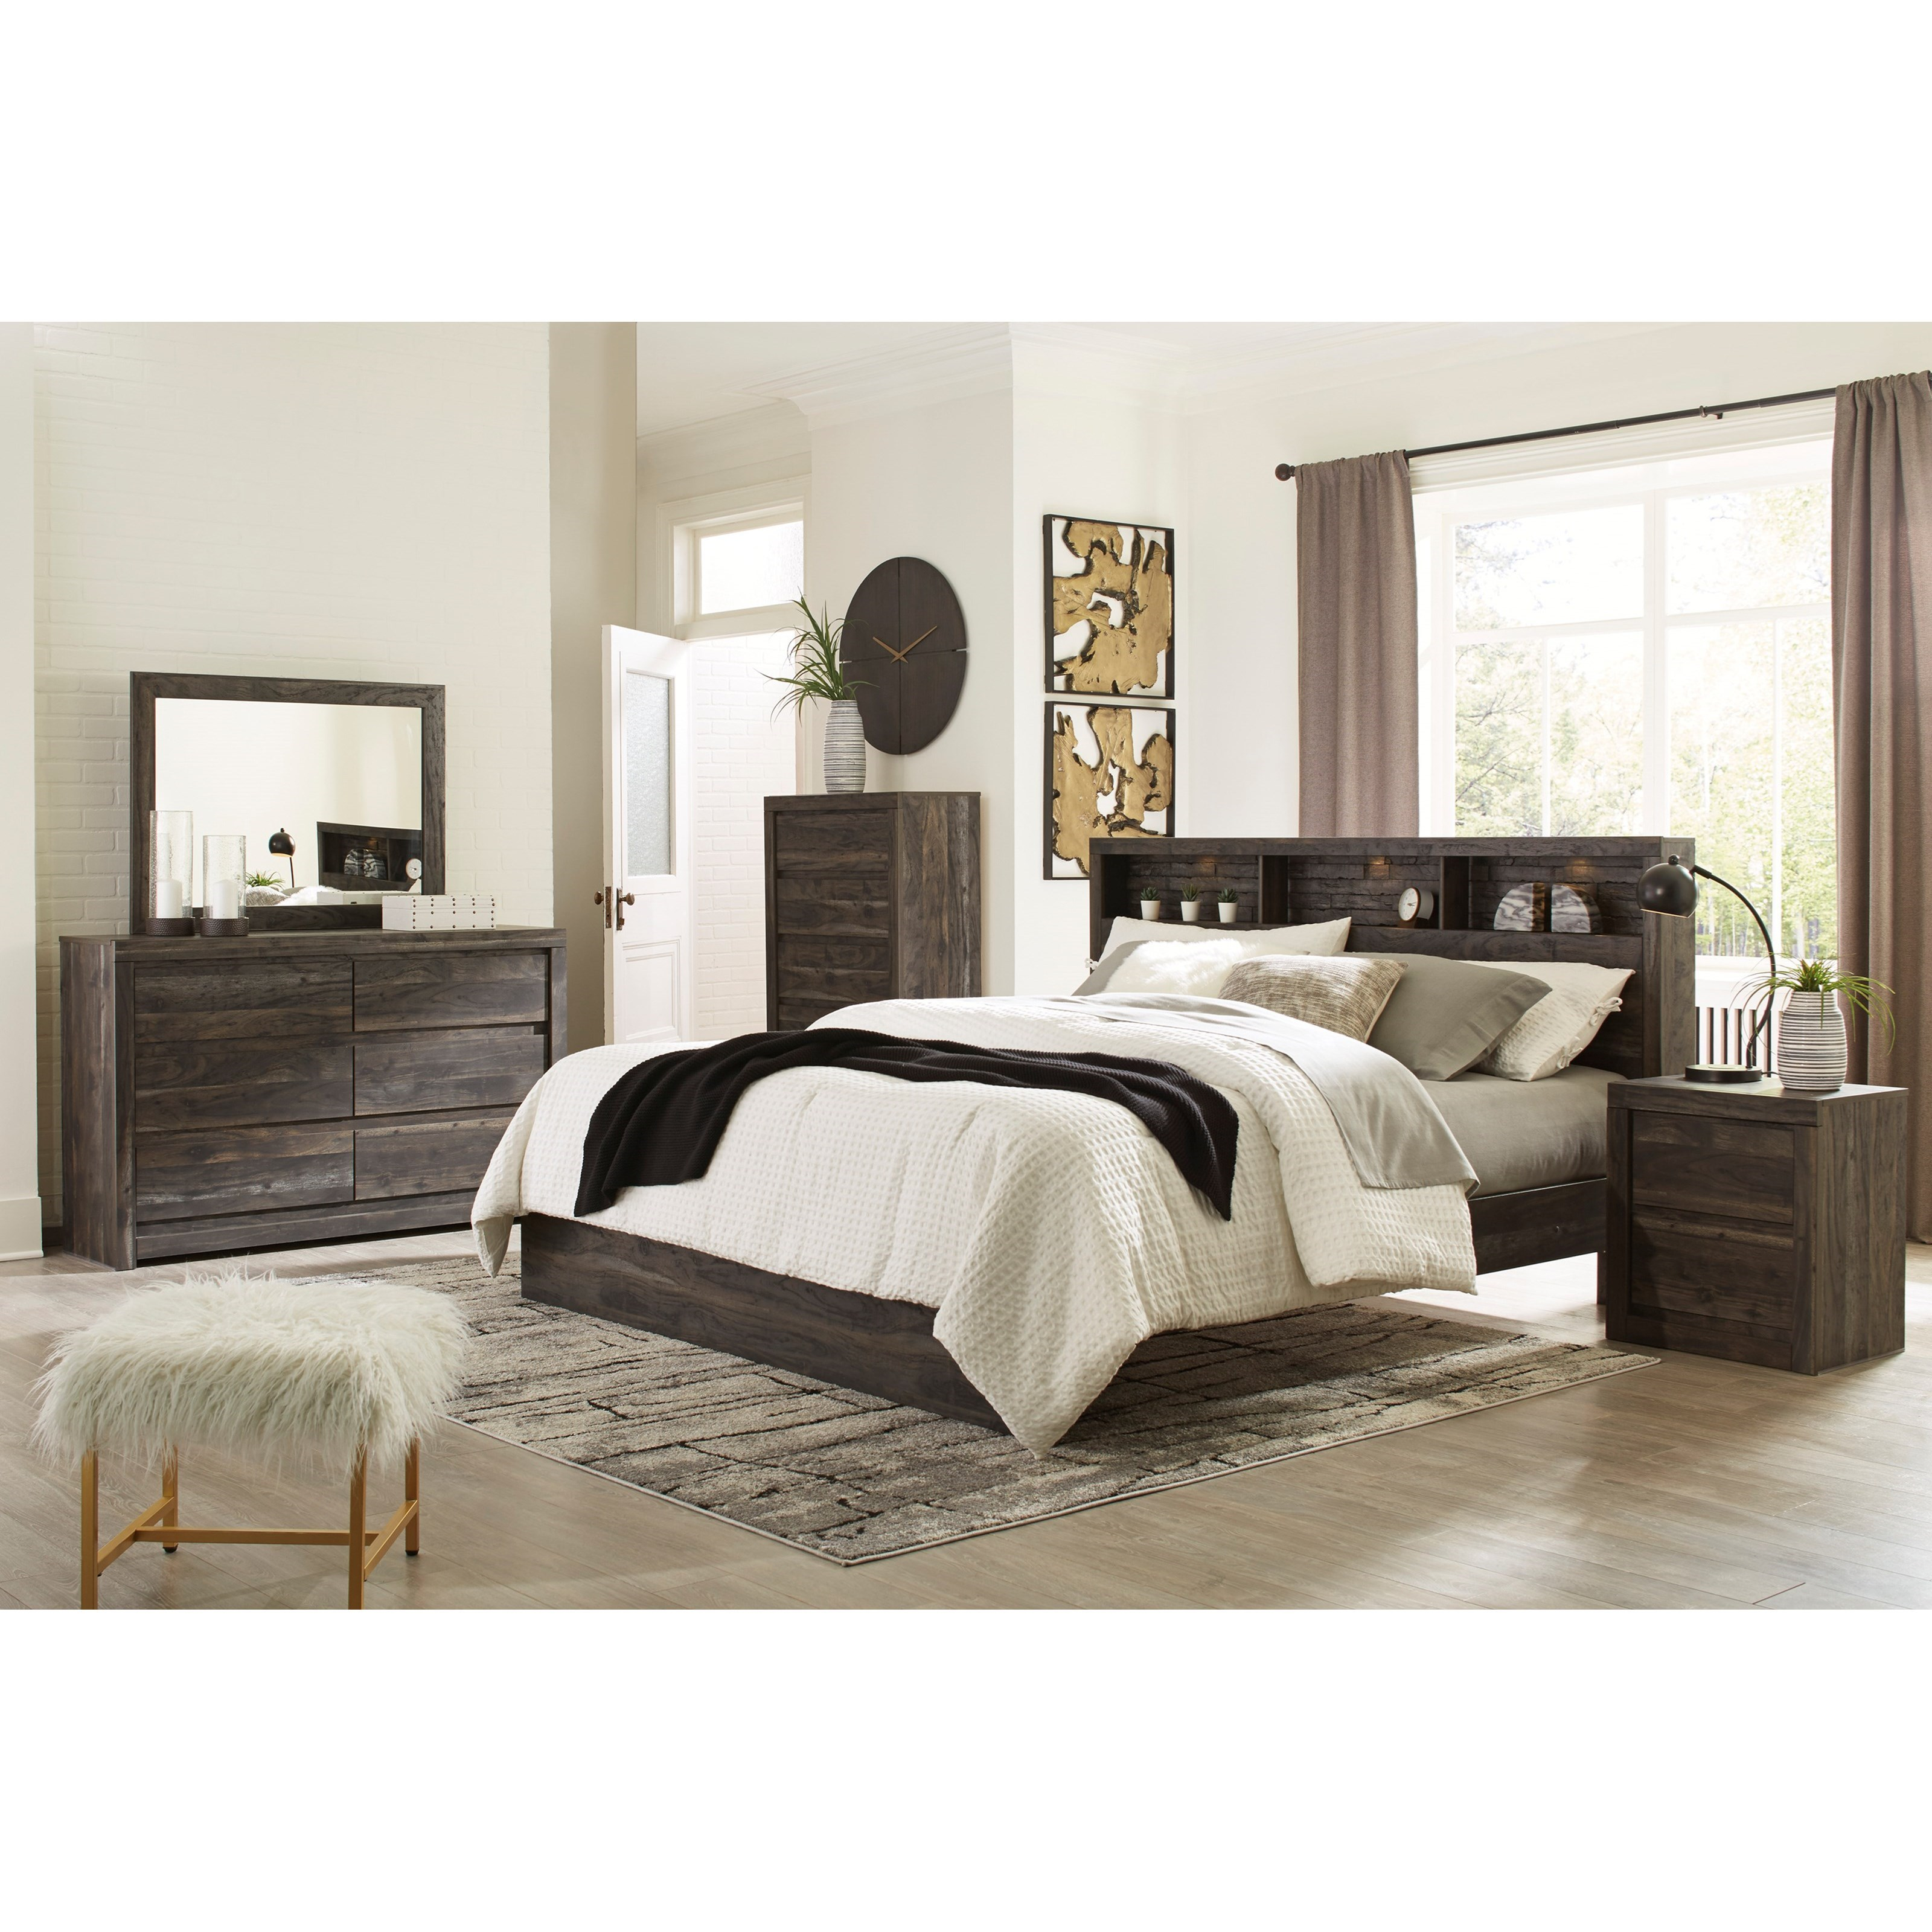 Vay Bay King Bedroom Group by Benchcraft at Walker's Furniture